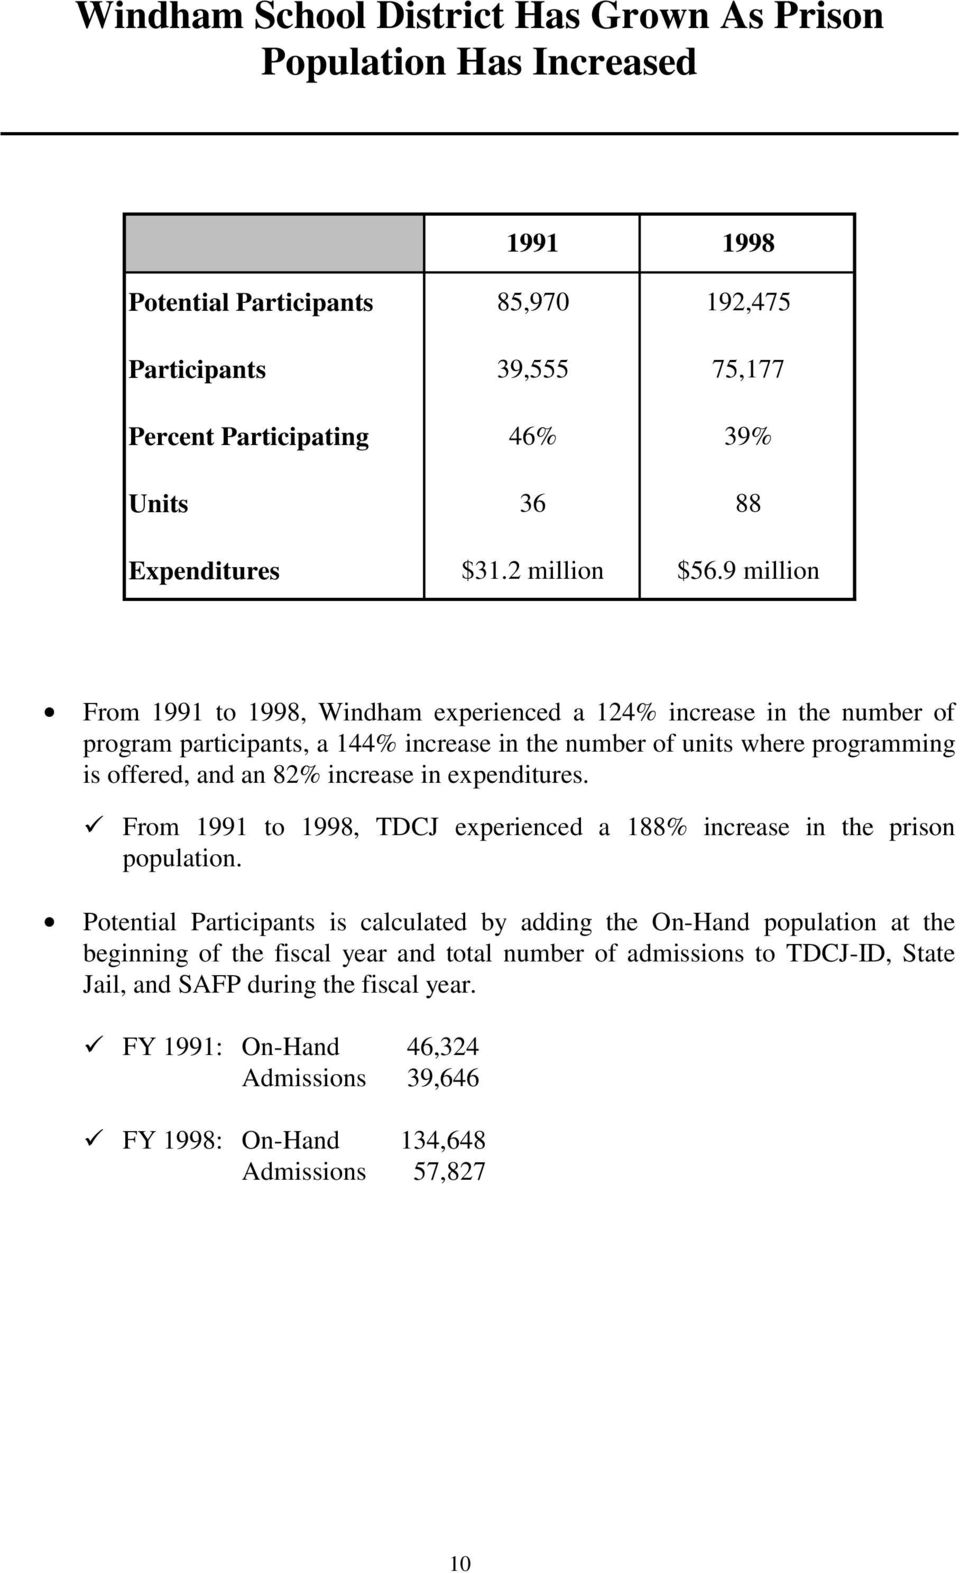 9 million From 1991 to 1998, Windham experienced a 124% increase in the number of program participants, a 144% increase in the number of units where programming is offered, and an 82% increase in